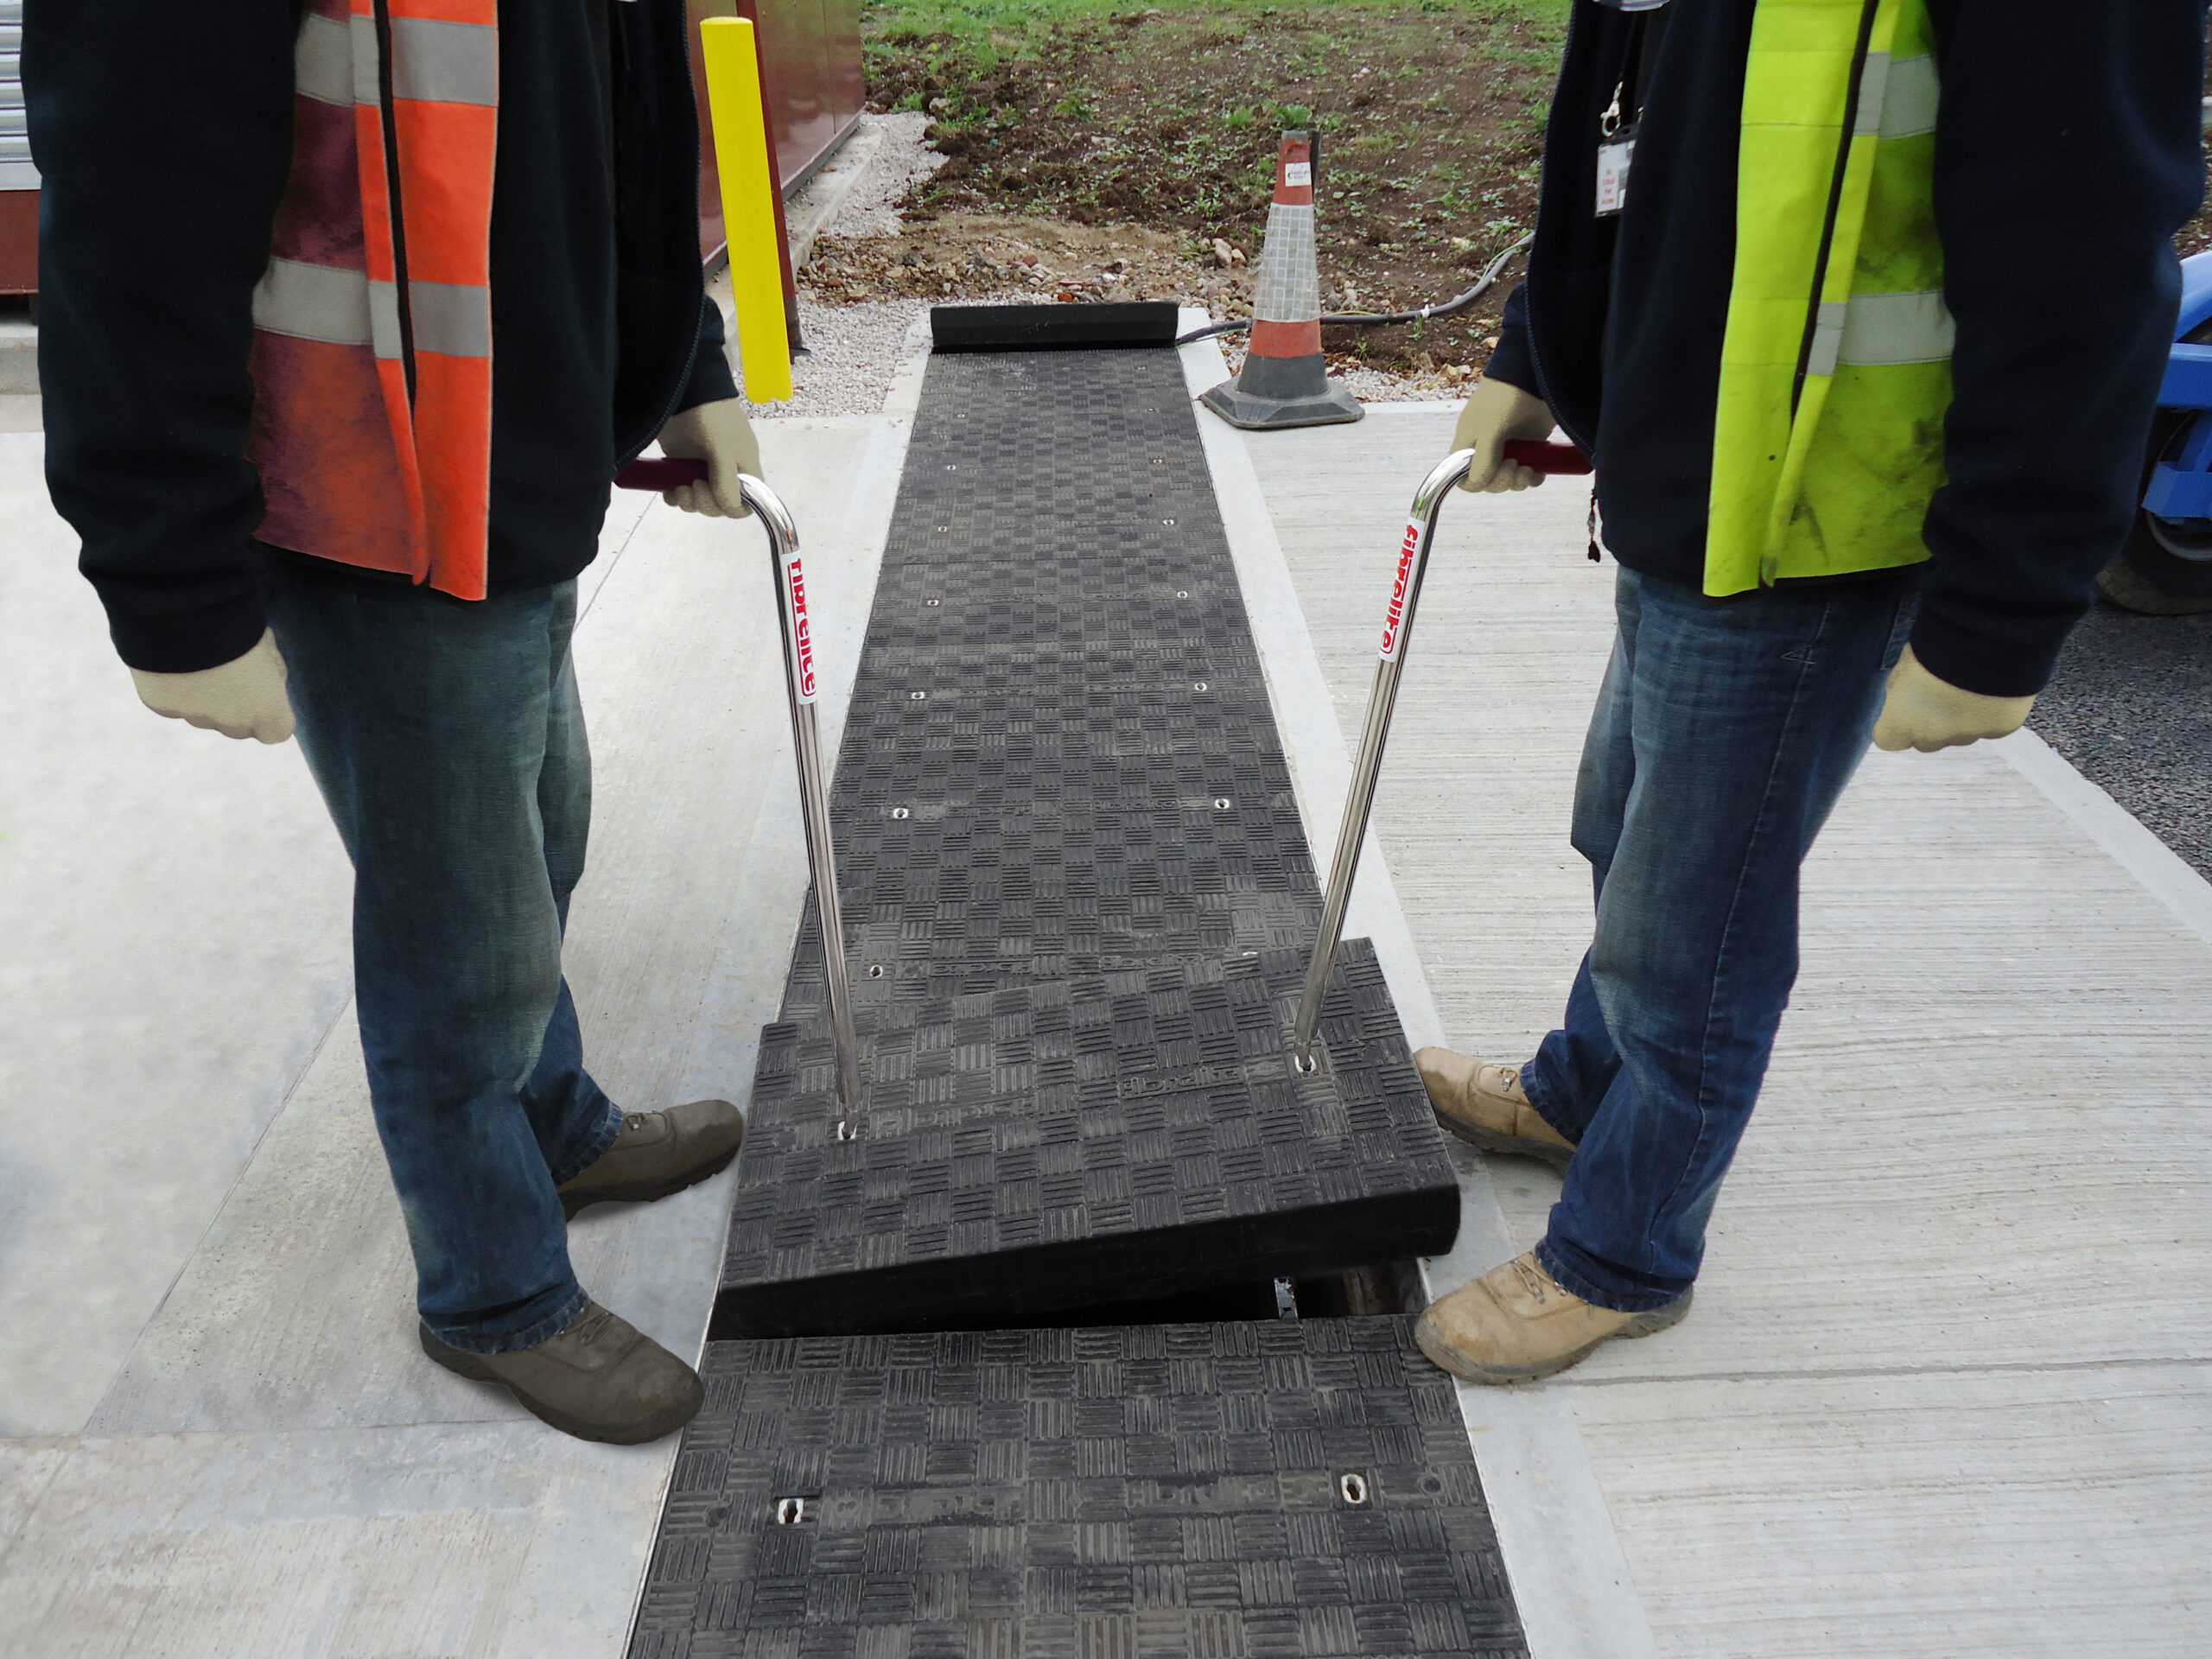 All Fibrelite trench covers can be safely and quickly removed by two people using the FL7 lifting handles (image used for illustration purposes and shows a different installation)